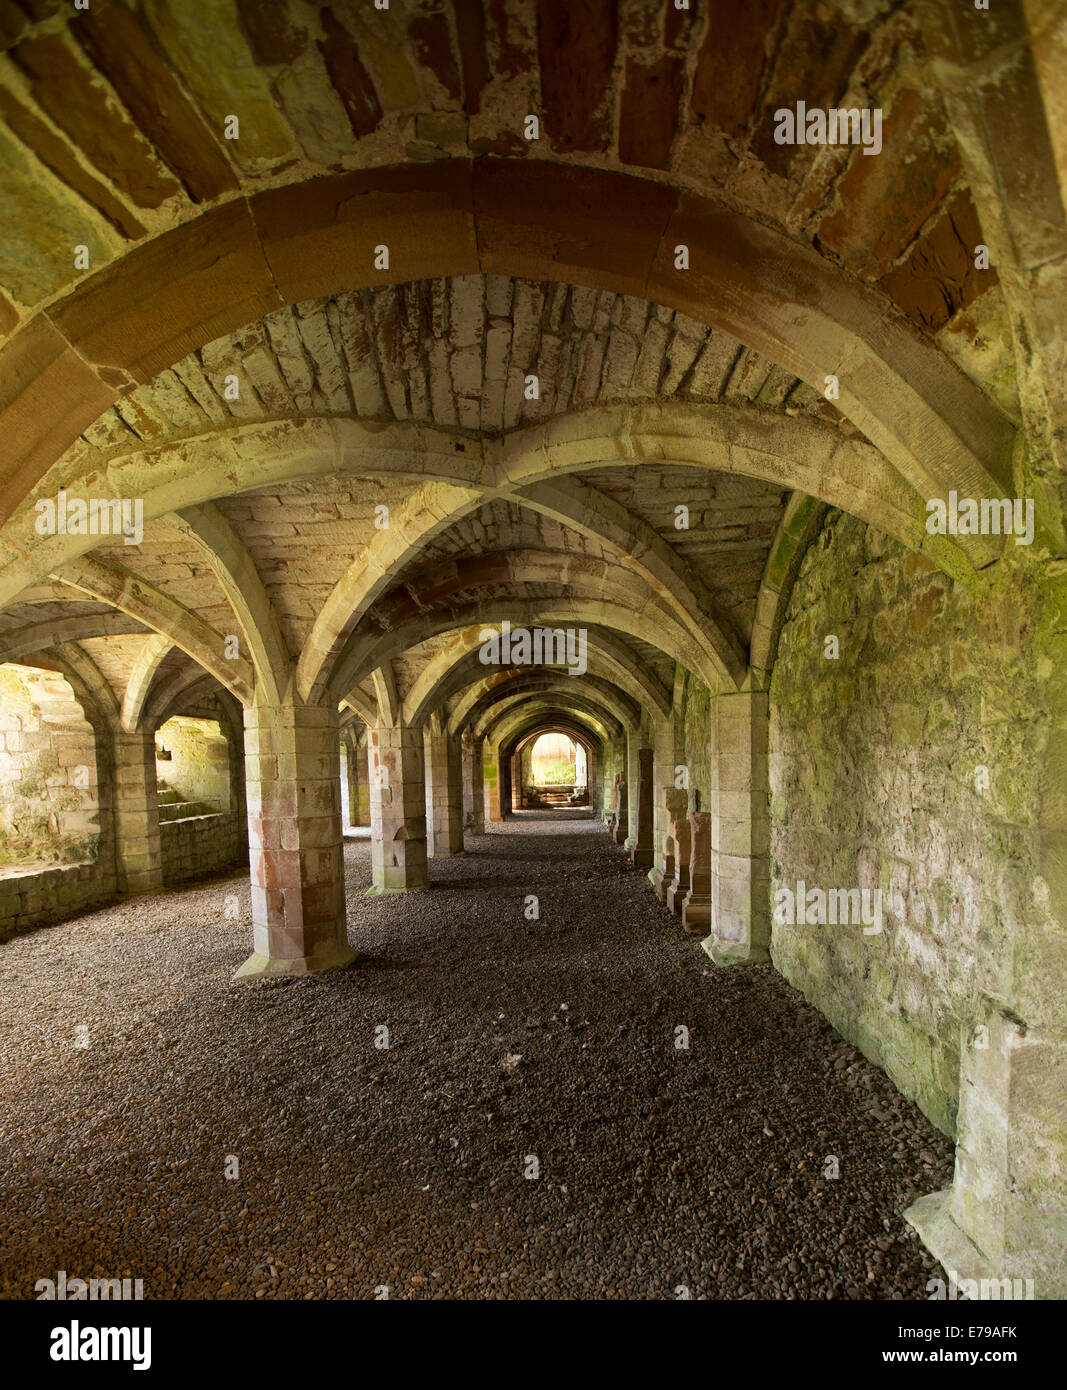 Arched Ceiling Stock Photos Images Alamy